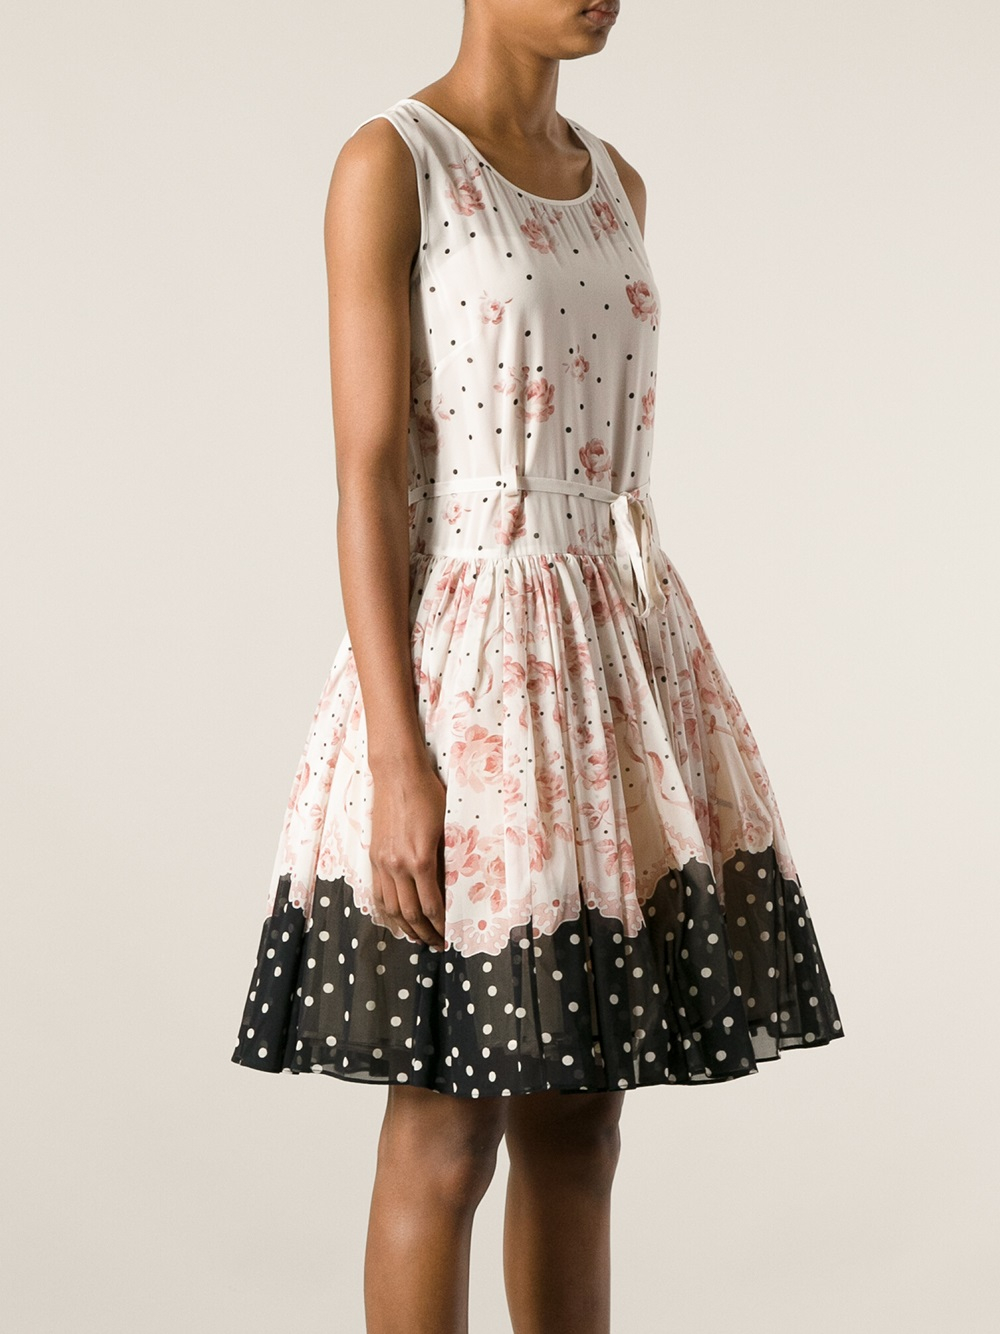 Red Valentino Spring 2016: Red Valentino Floral Print Dress In White